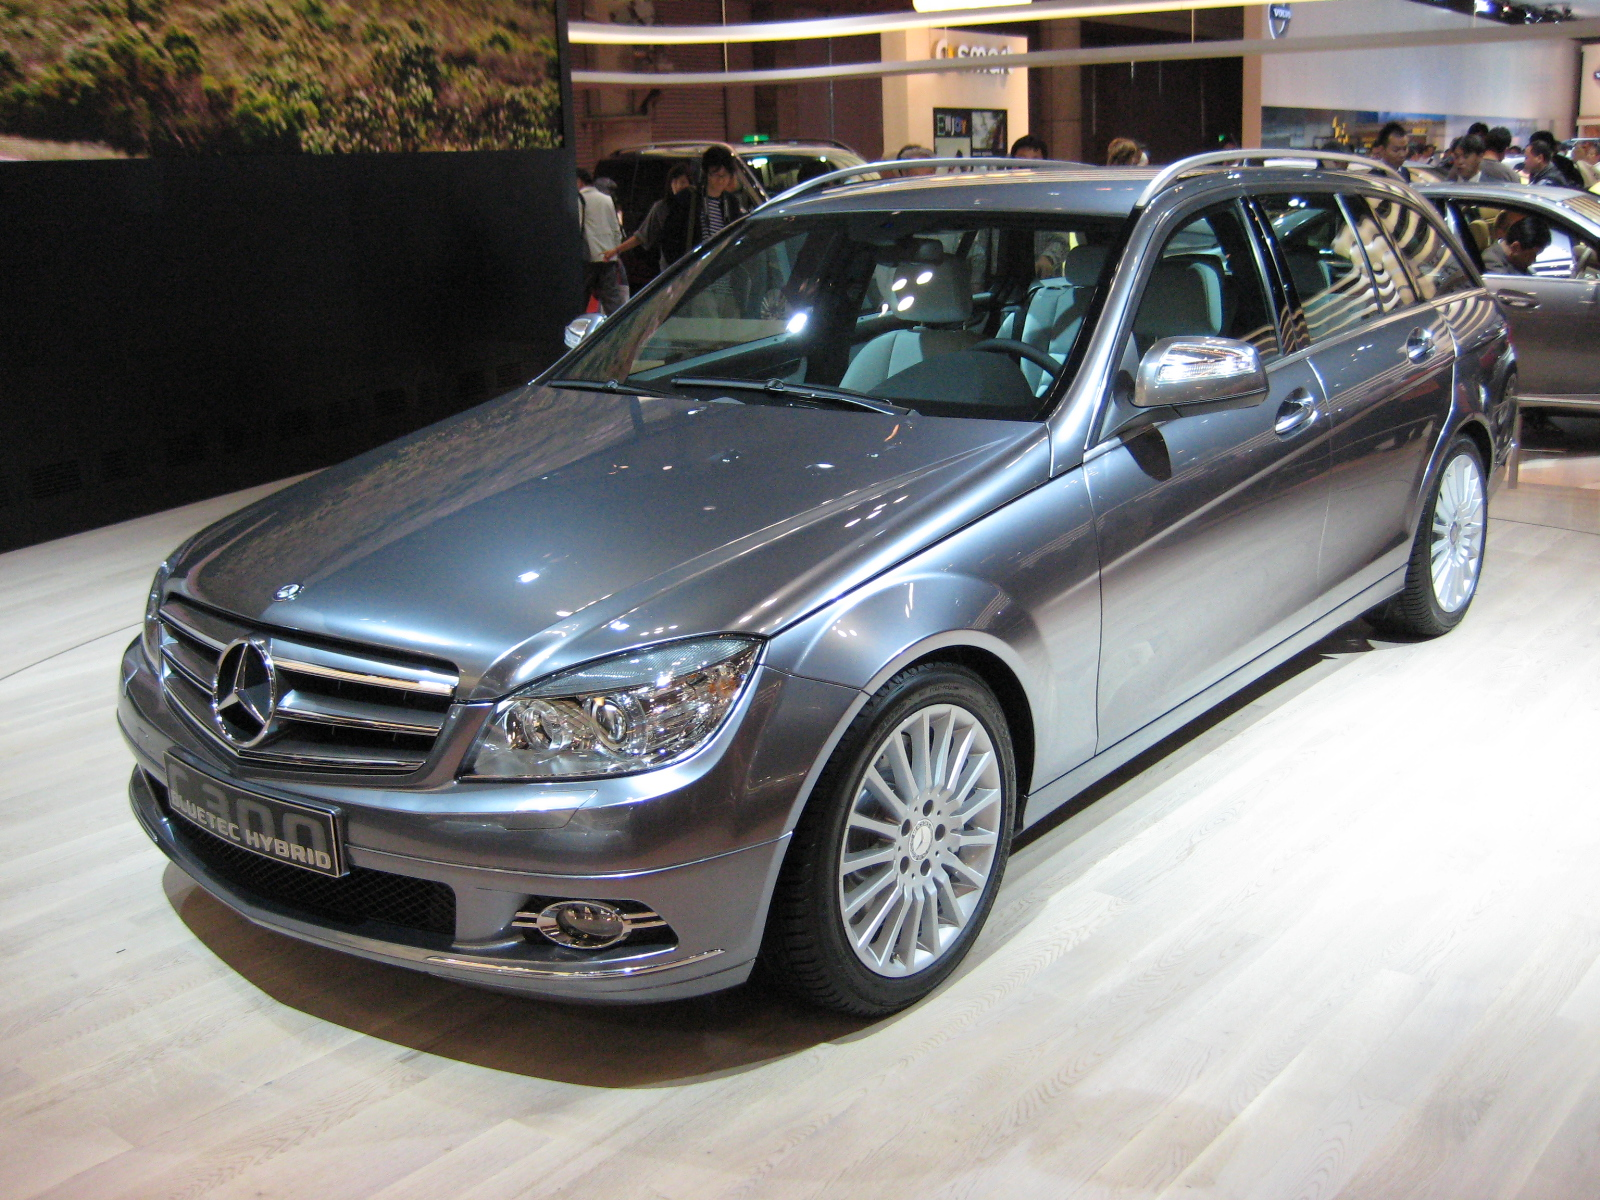 Mercedes benz c 300 photos 12 on better parts ltd for Looking for mercedes benz parts